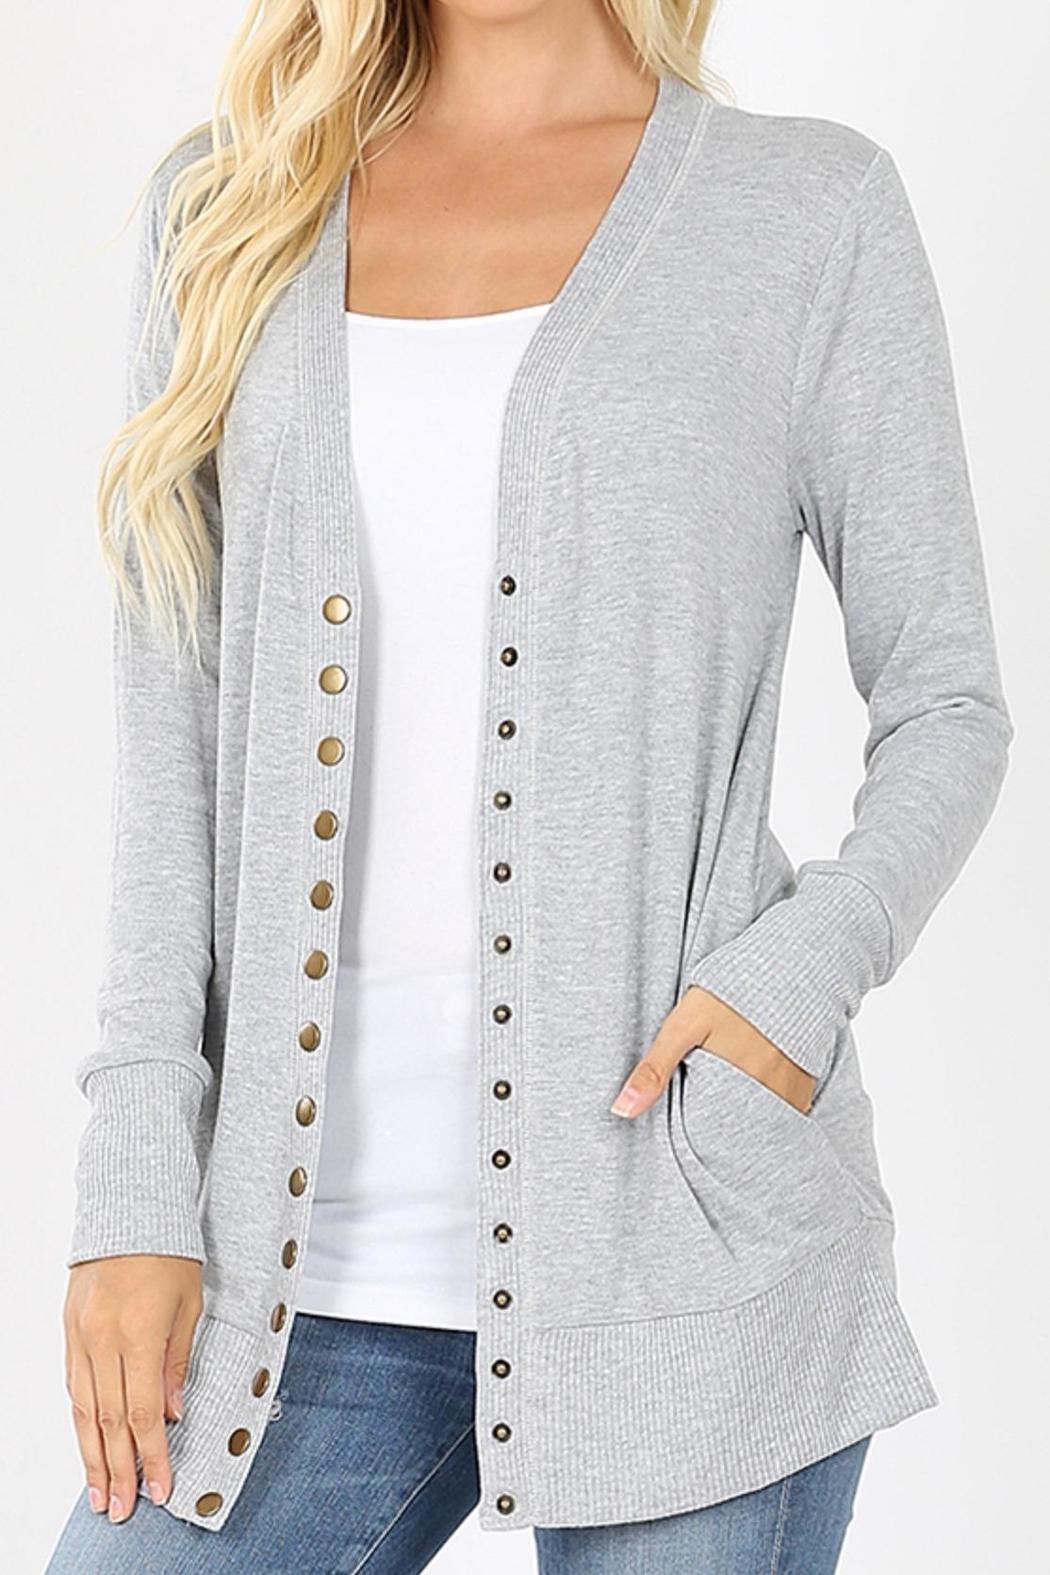 Zenana Outfitters Snap-Button Sweater Cardigan - Front Cropped Image